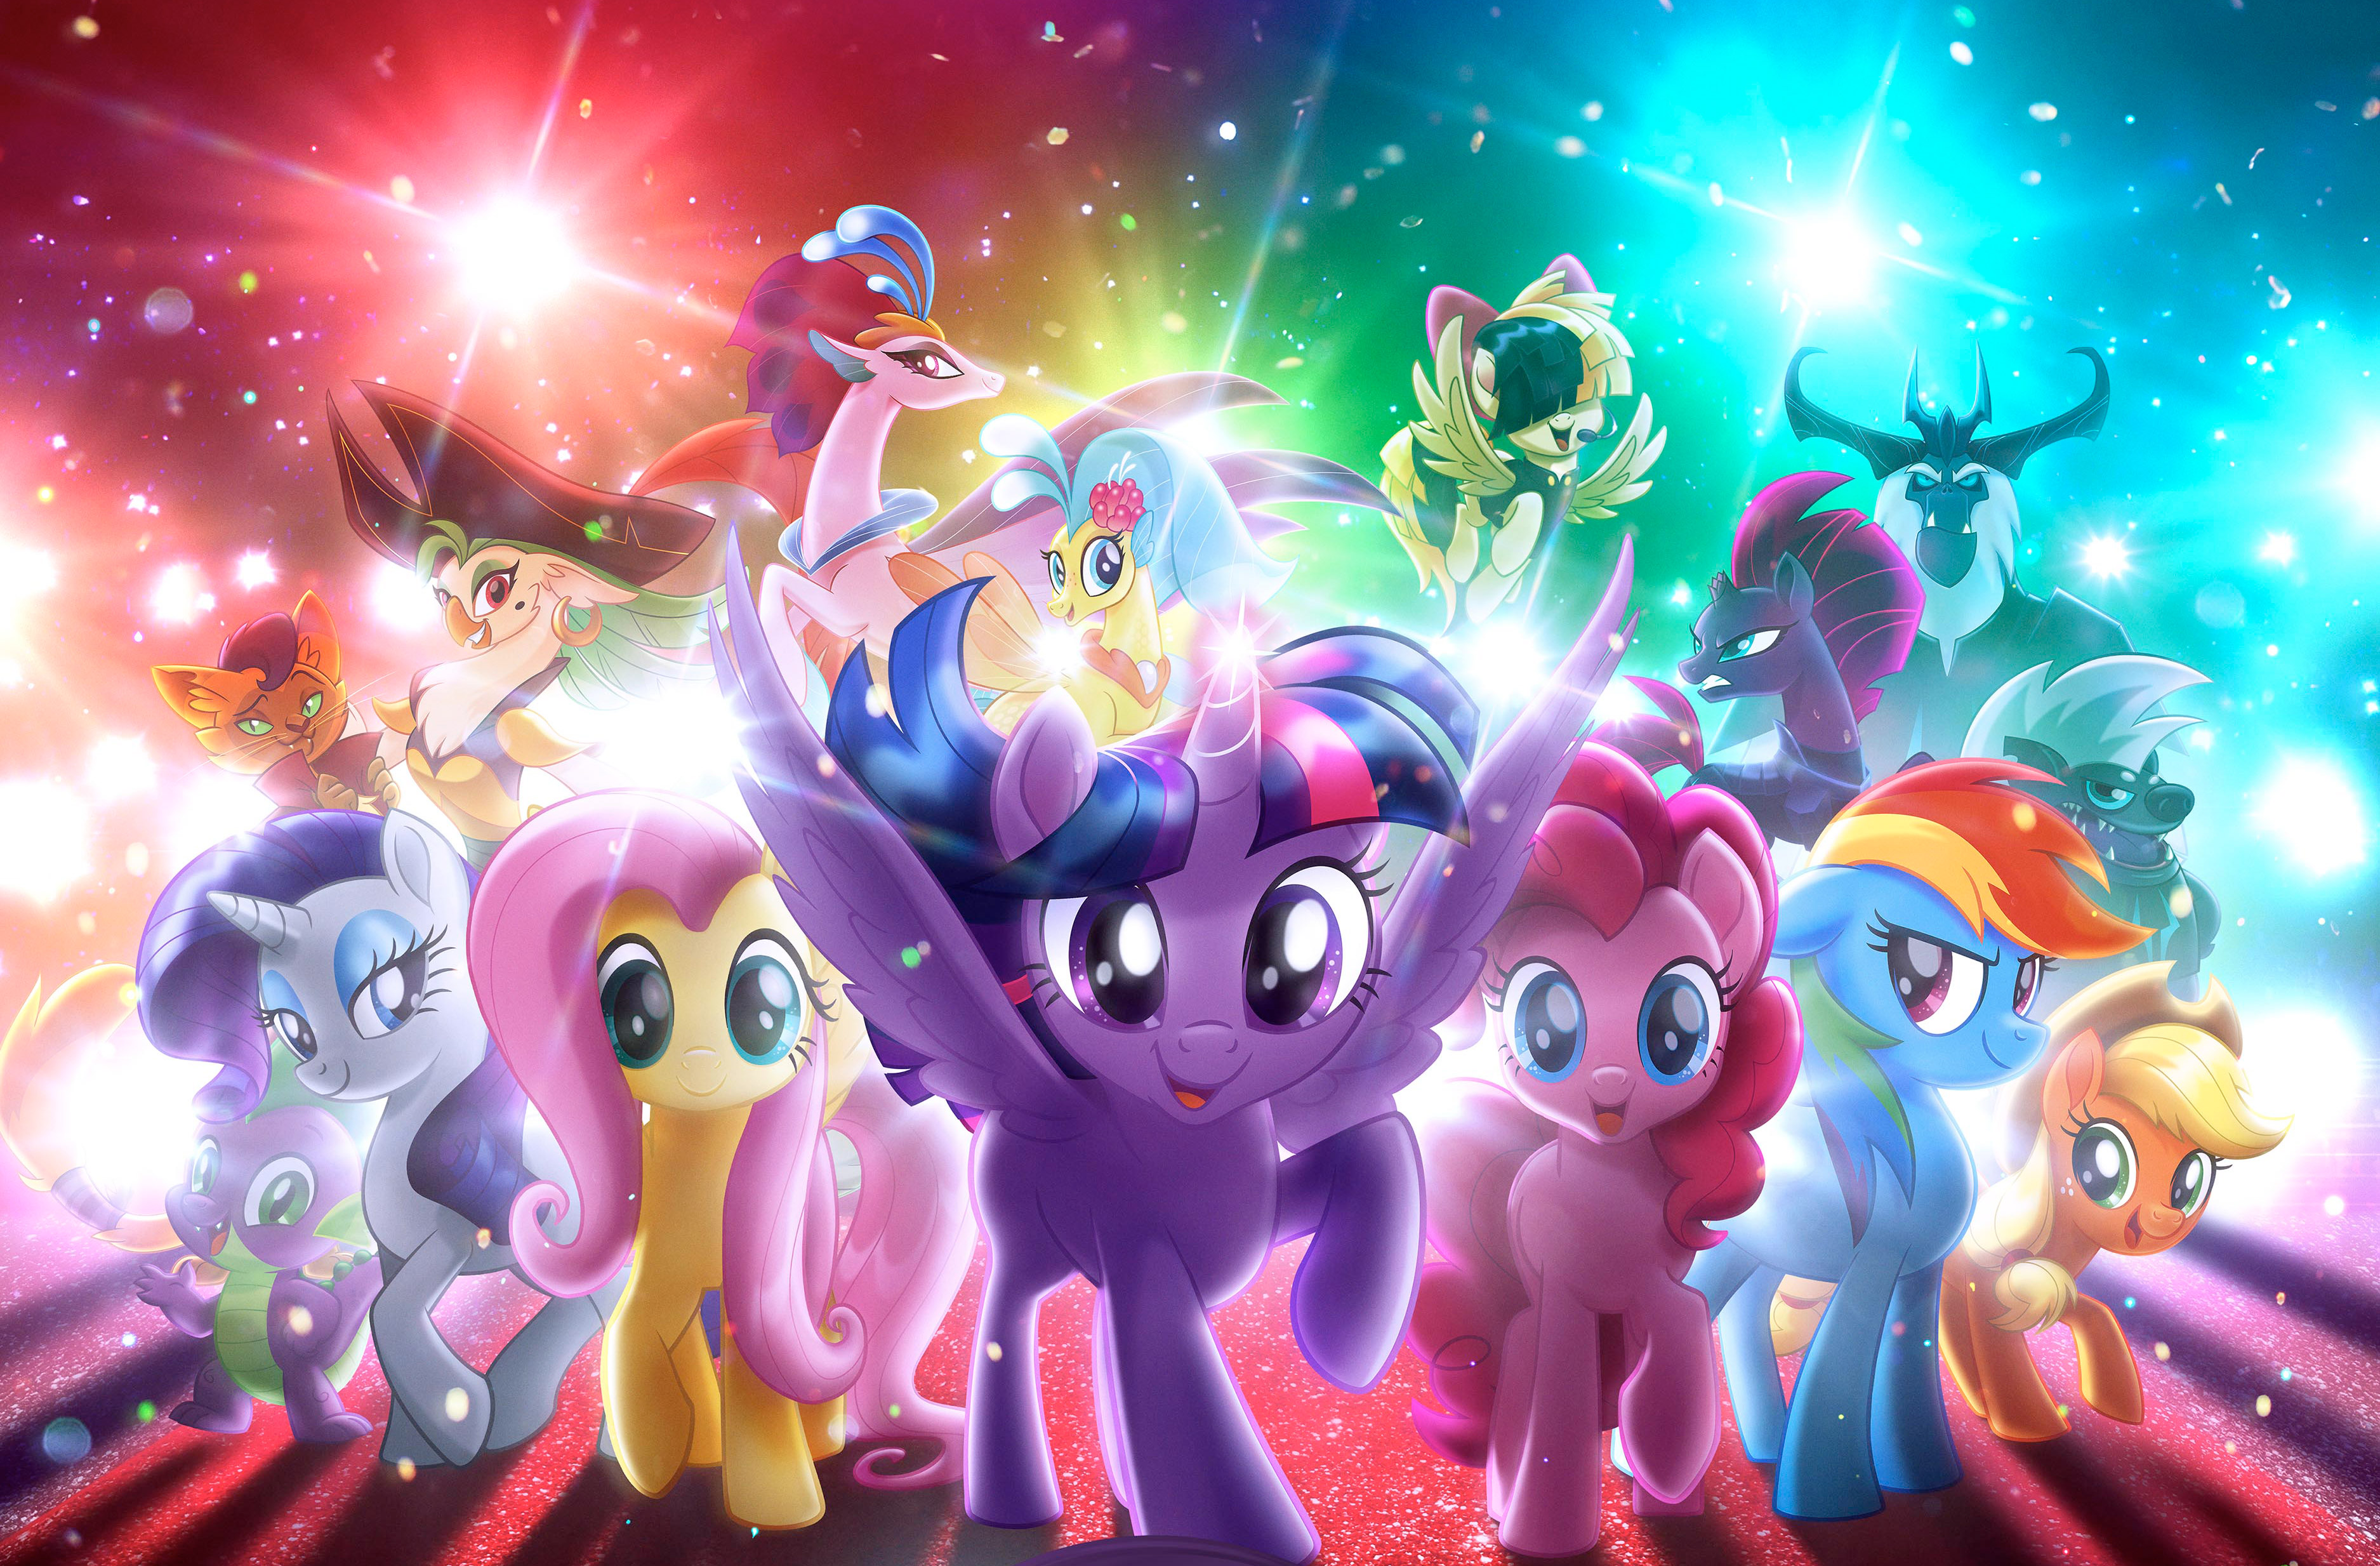 4k Wallpaper 3d 3840x2400 My Little Pony The Movie Hd Movies 4k Wallpapers Images